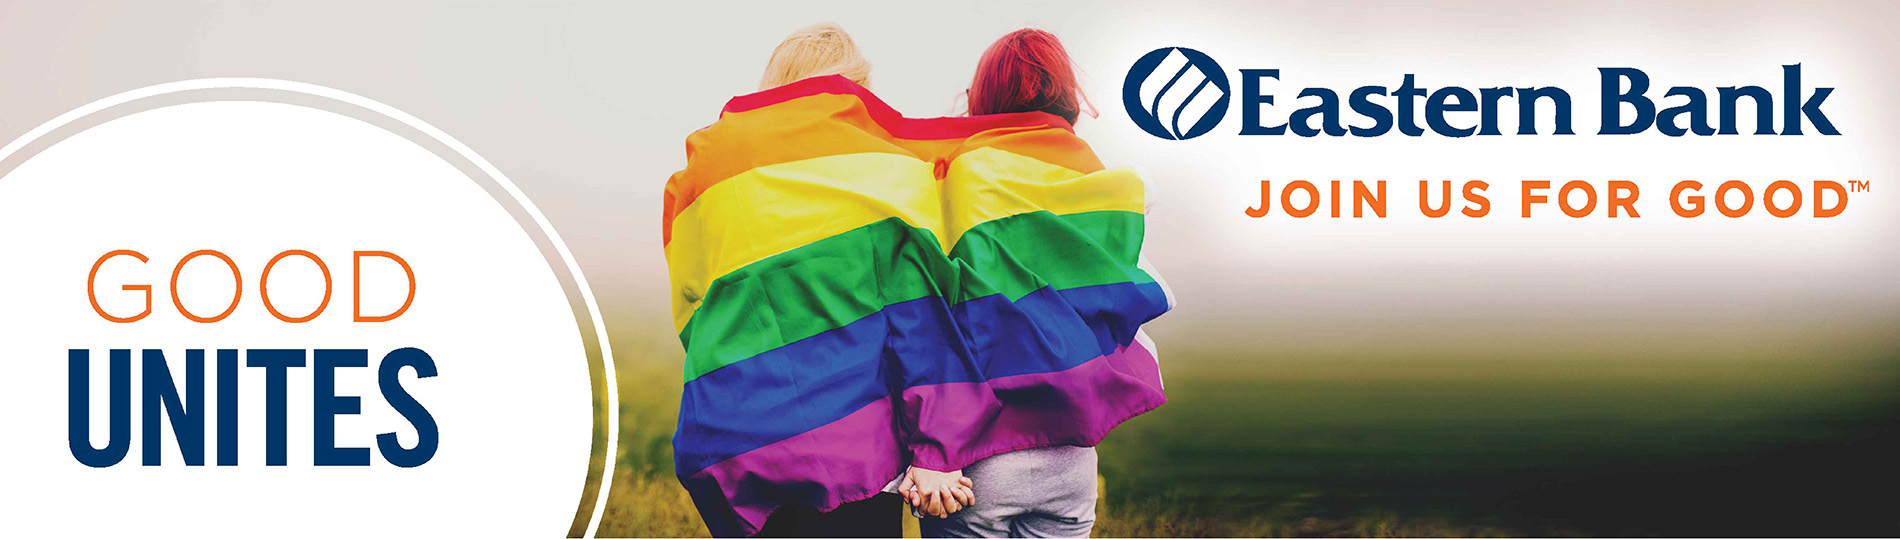 At Eastern Bank, we embrace diversity. We believe good means breaking down the barriers that stand between people and prosperity.